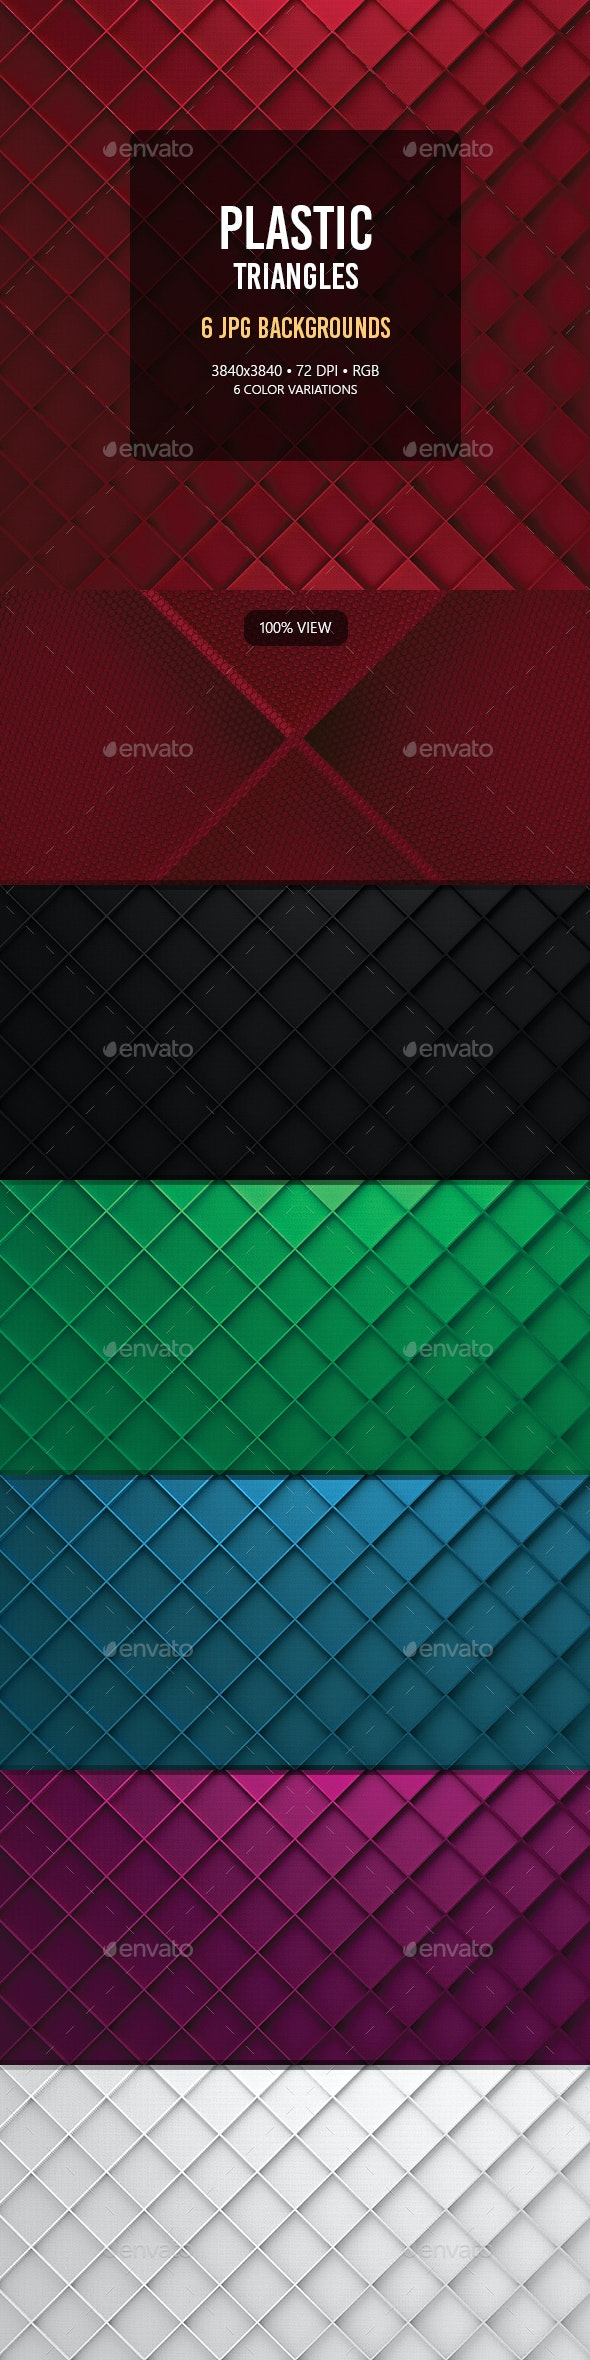 Plastic Triangles - Abstract Backgrounds